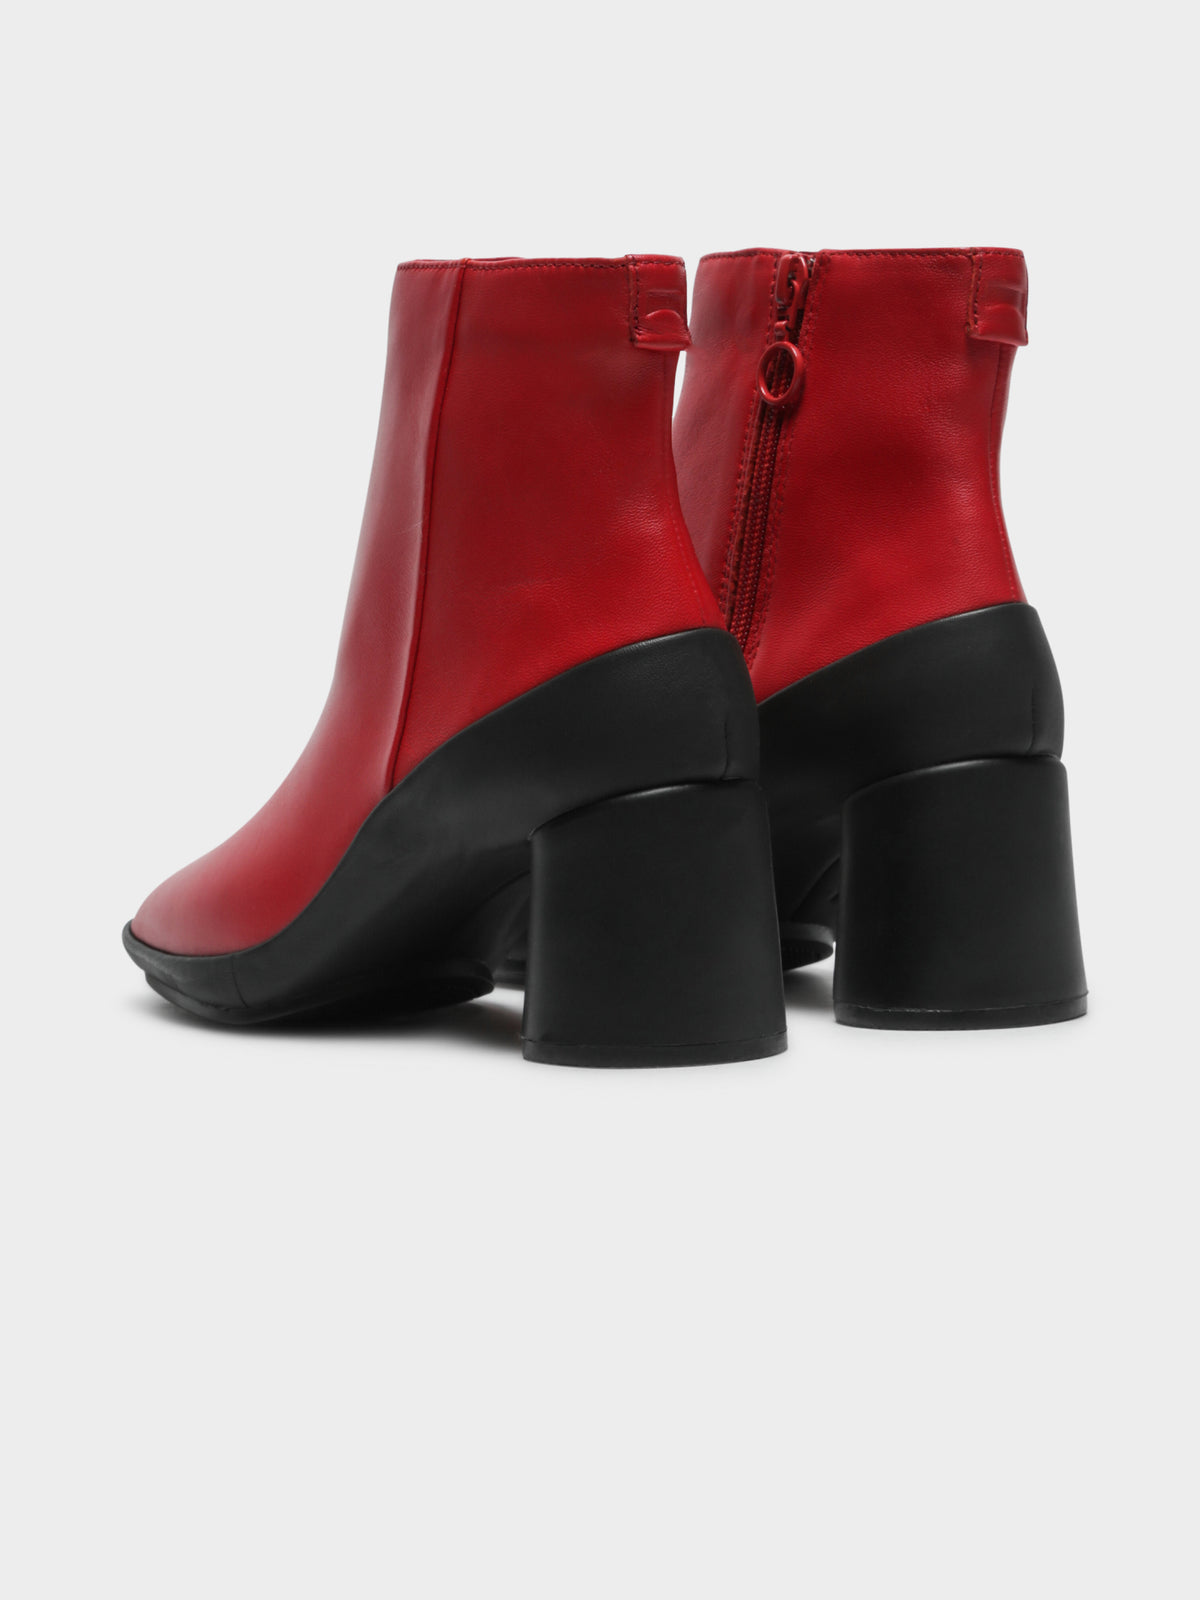 Womens Ankle Boots in Red & Black